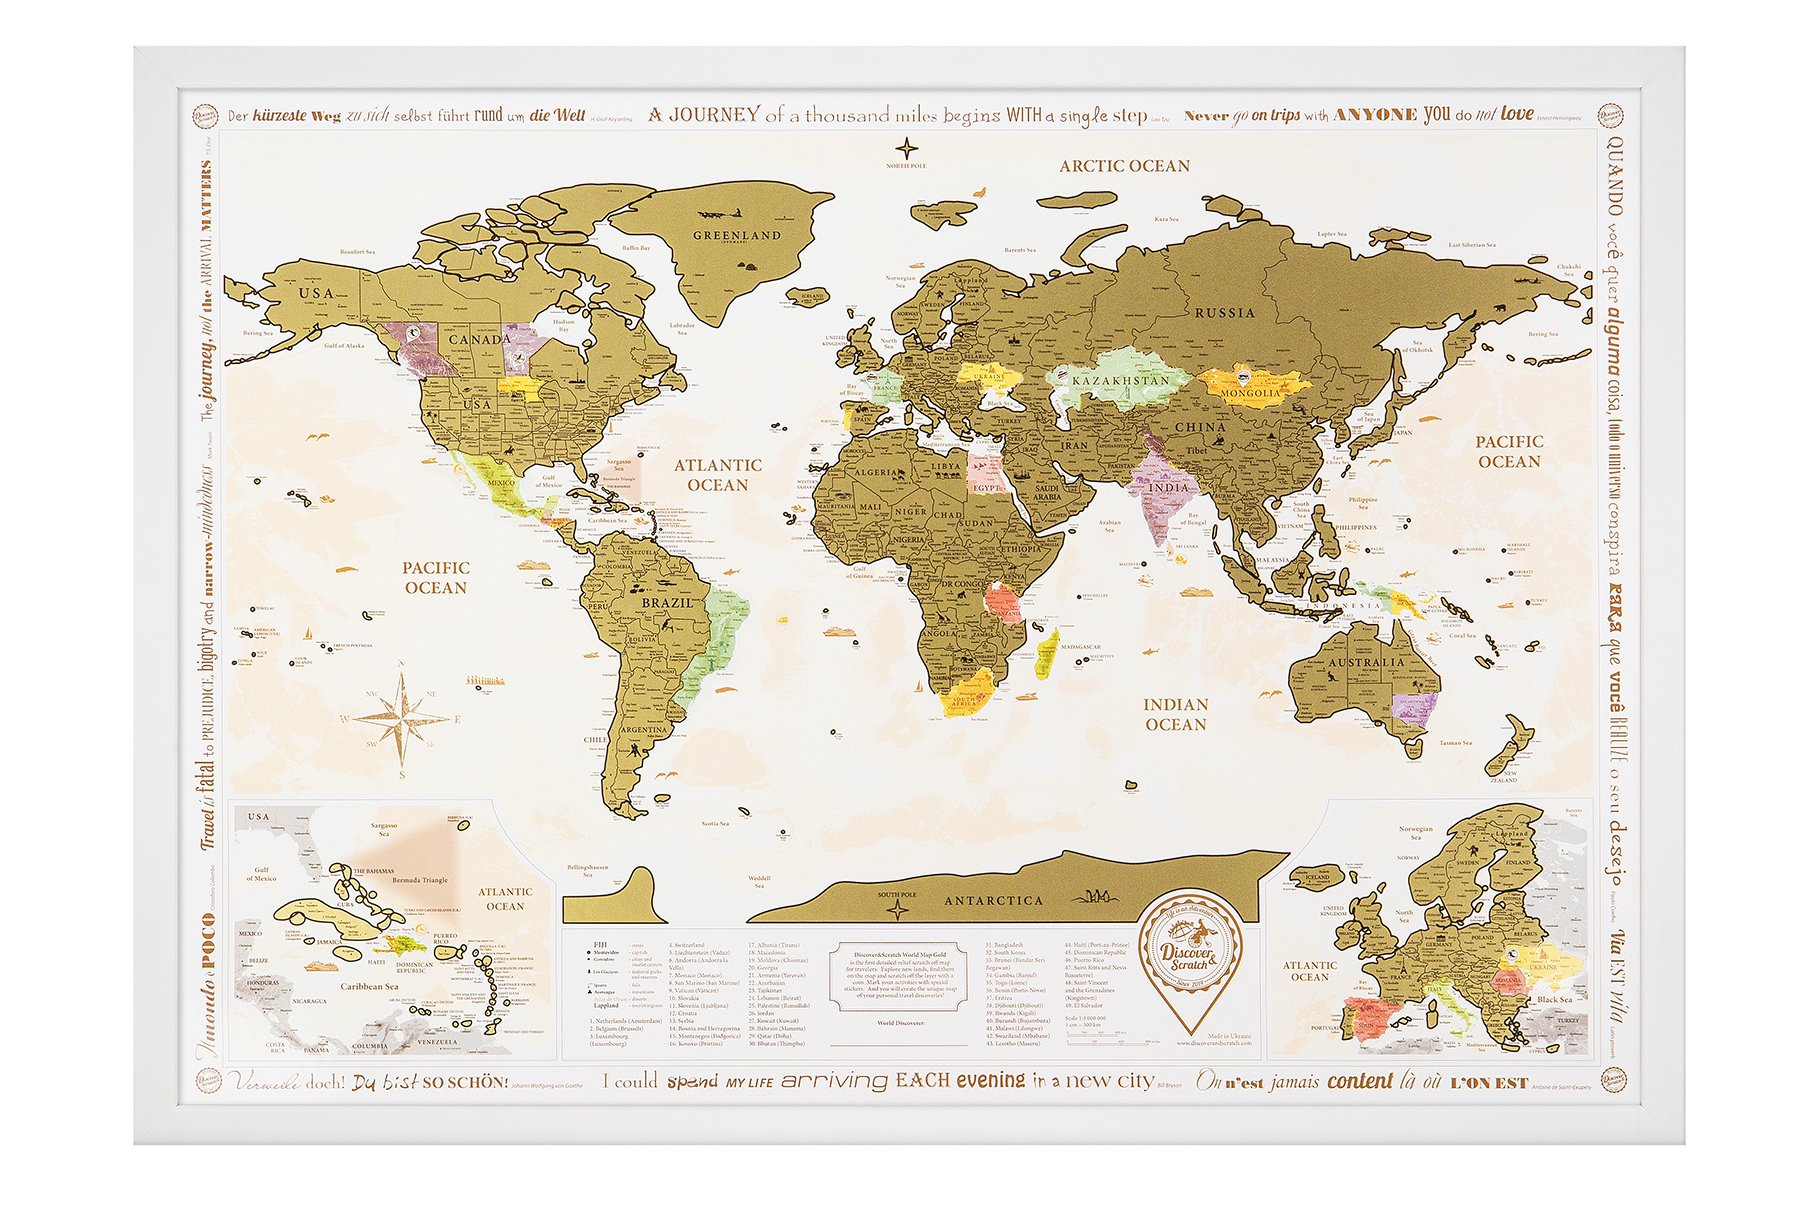 "NEW Framed World Map with Scratch off, Gold Edition! White Frame. Golden Scratch. Large Size 26x36.2"". Enlarged Europe and Caribbean Islands. Place for Your Sign. ORIGINAL (Map in White Frame) by Discovery Map"